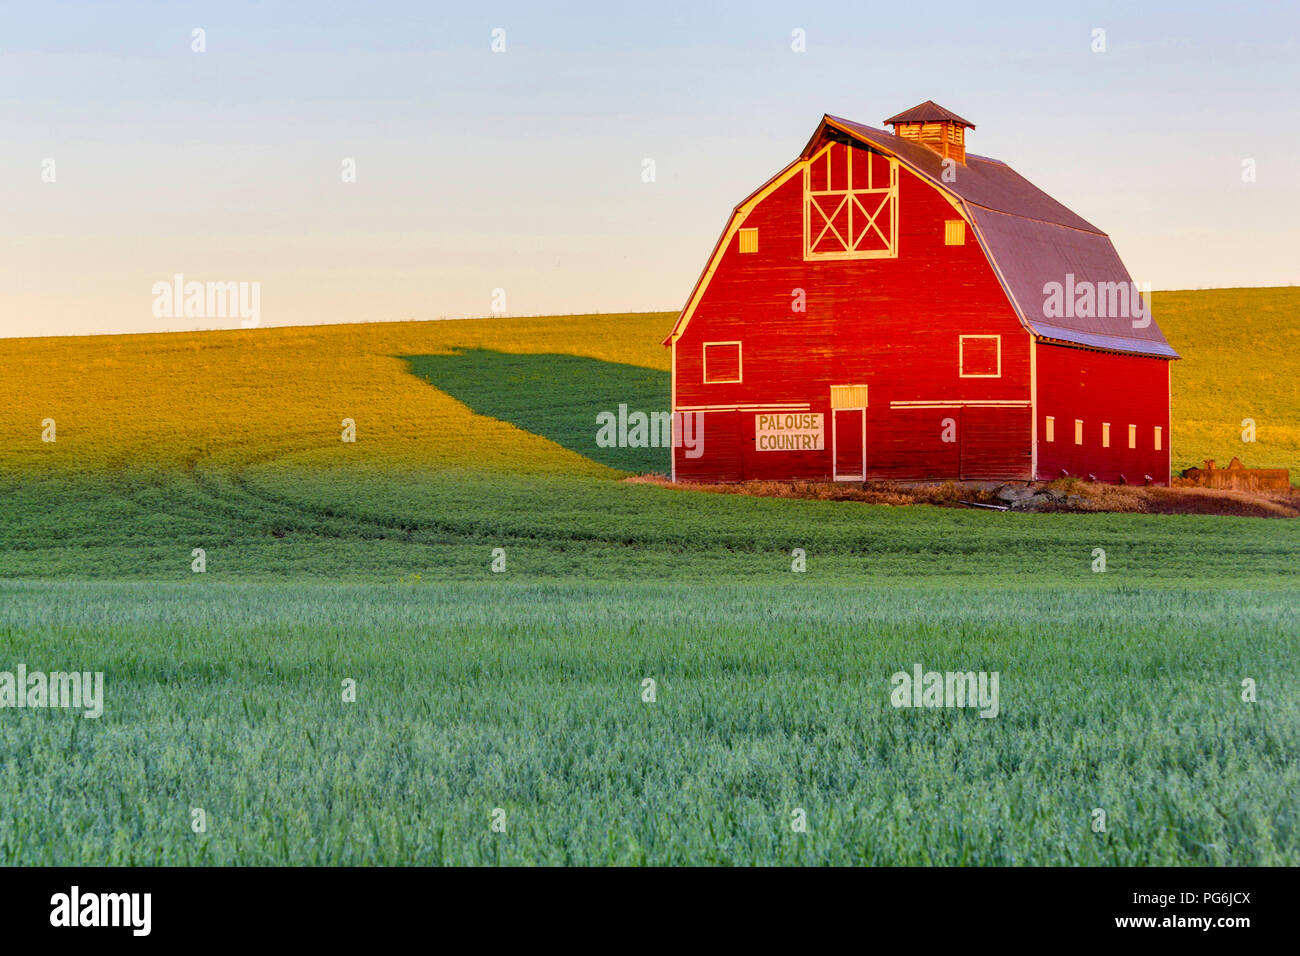 morning sun lighting up a barn in the palouse in washington state near pullman stock photo alamy https www alamy com morning sun lighting up a barn in the palouse in washington state near pullman image216505098 html